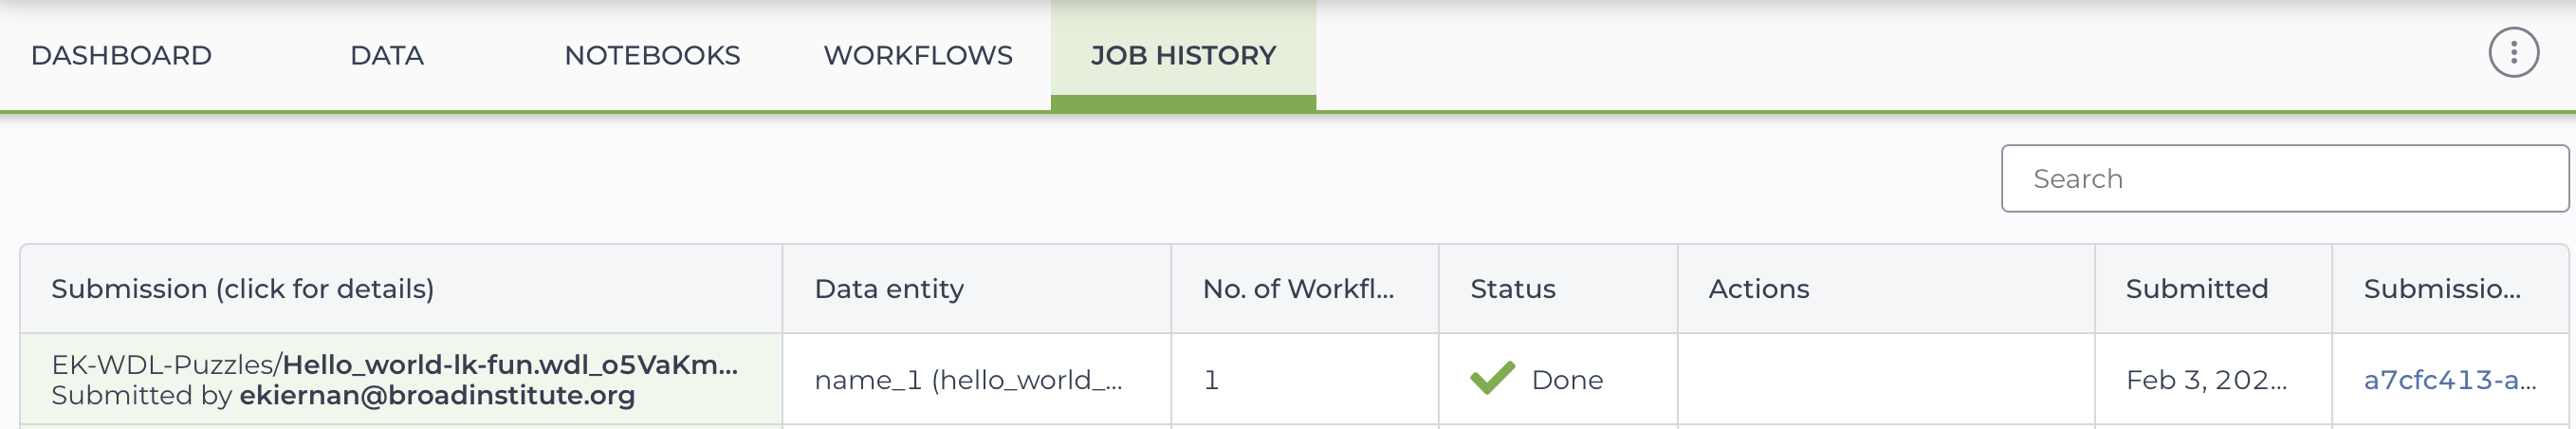 easy_jobhistory.png